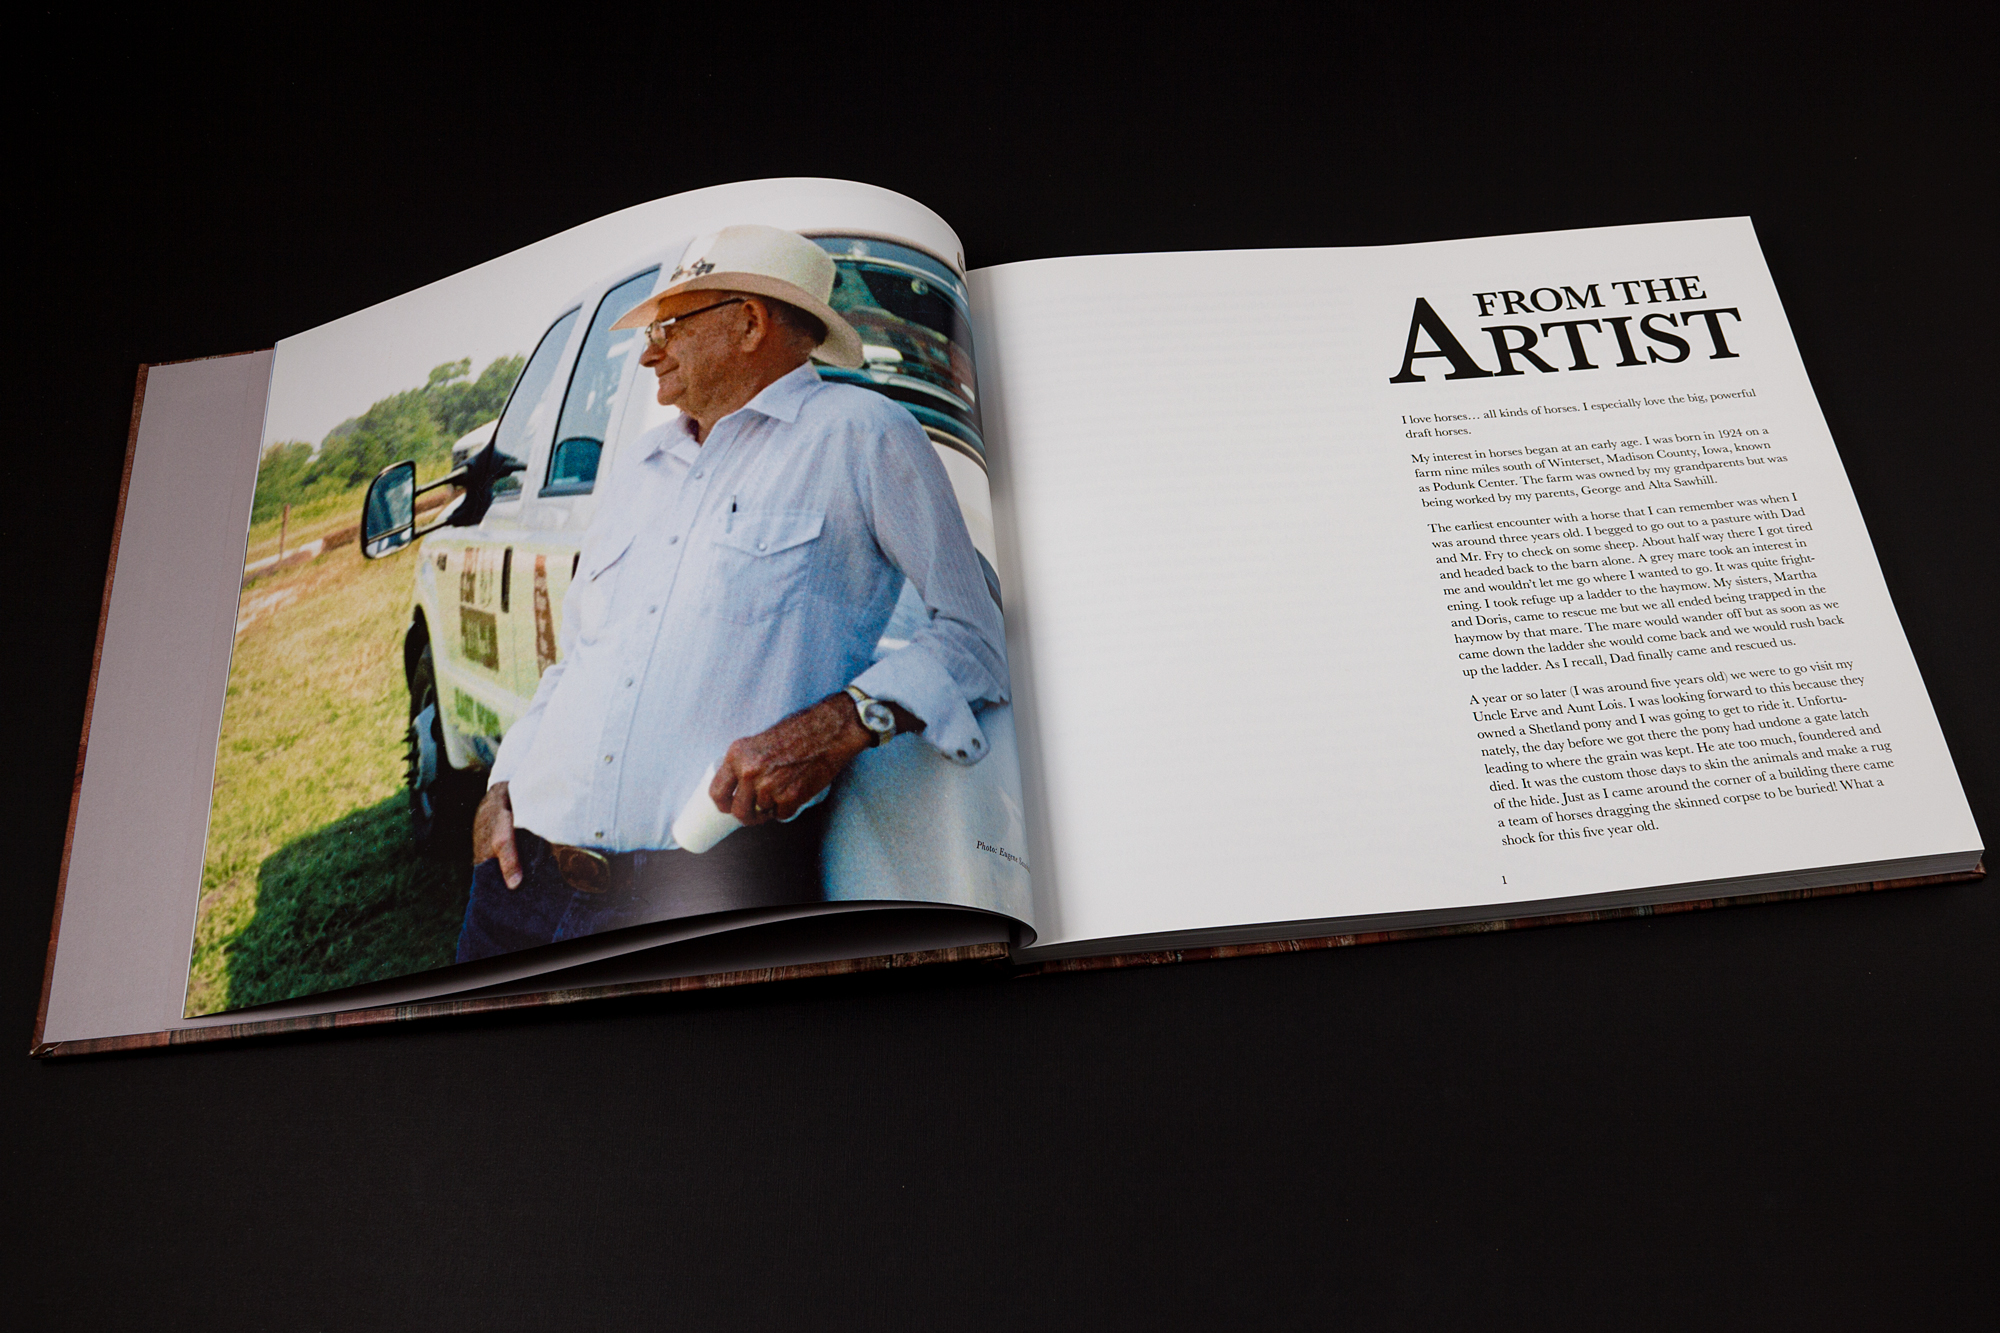 PRINT DESIGN/BOOK DESIGN - The Painter from Podunk - ©UnParalleled, LLC dba UP-Ideas / Roger Sawhill / Mark Braught - Atlanta, Georgia | Lawrenceville, Georgia | Commerce, Georgia